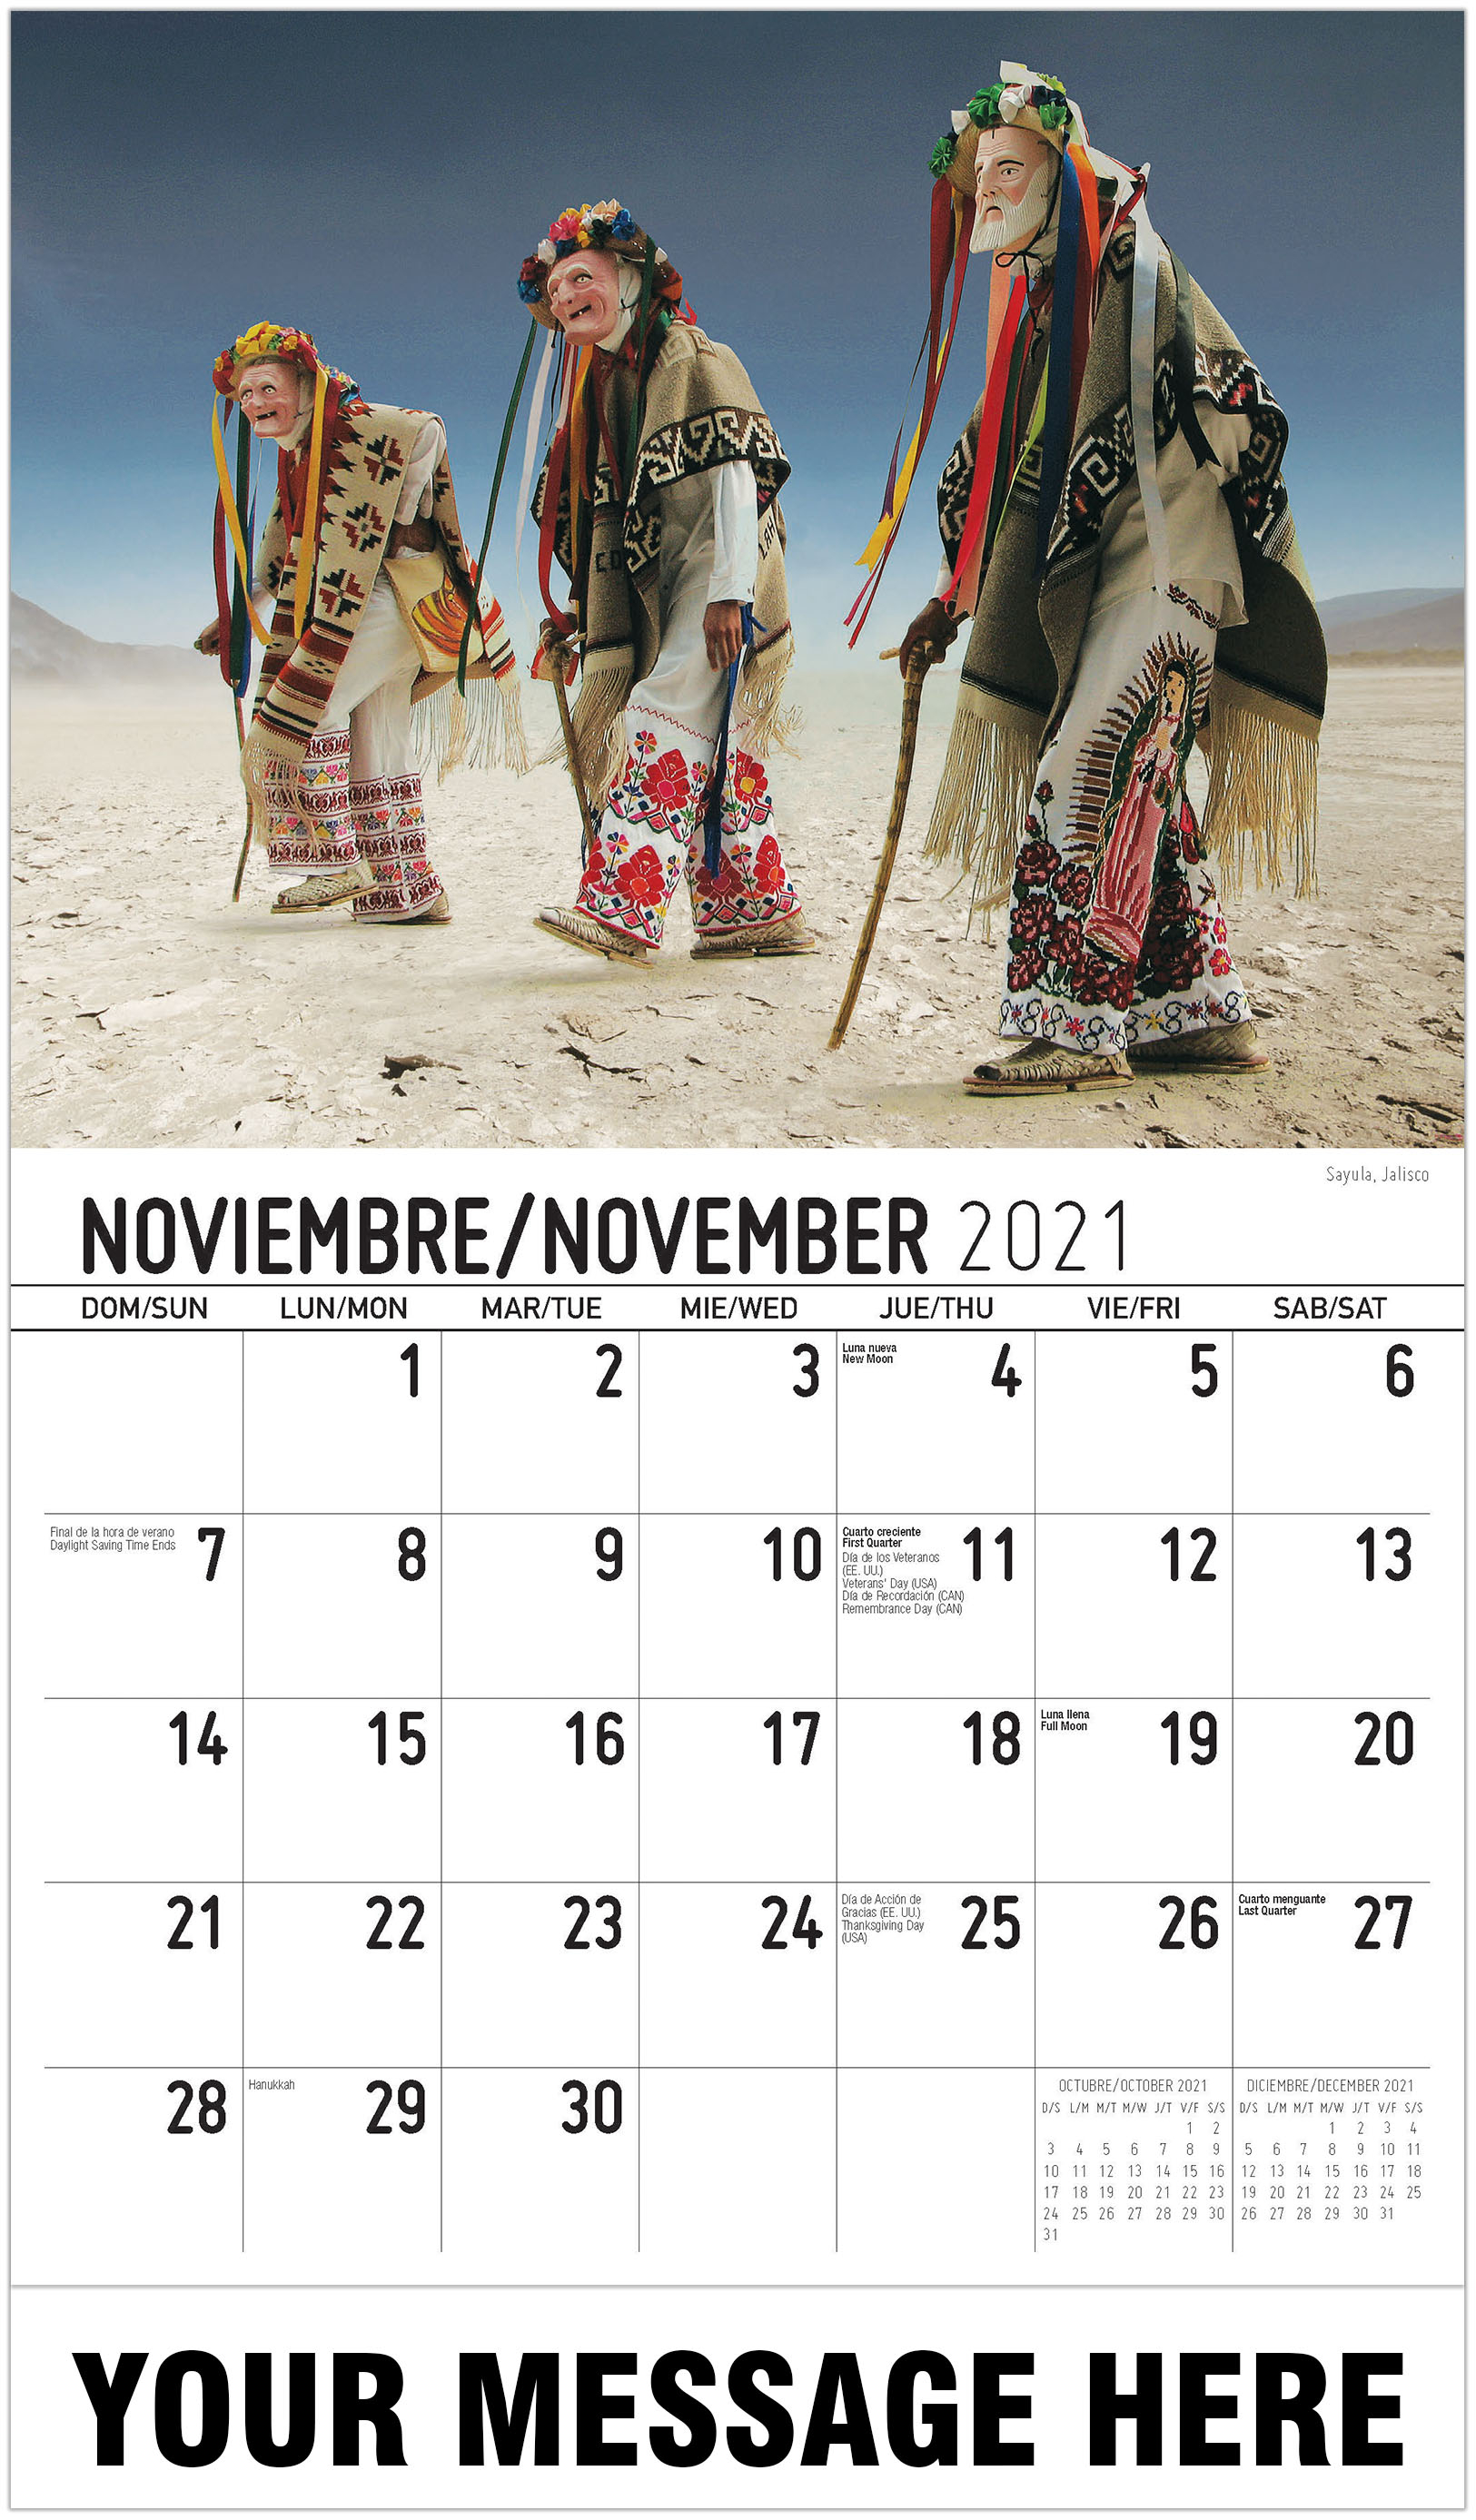 Scenes Of Mexico (Spanish English Bilingual) Pertaining To Calendar With November 2021 Mexican Names